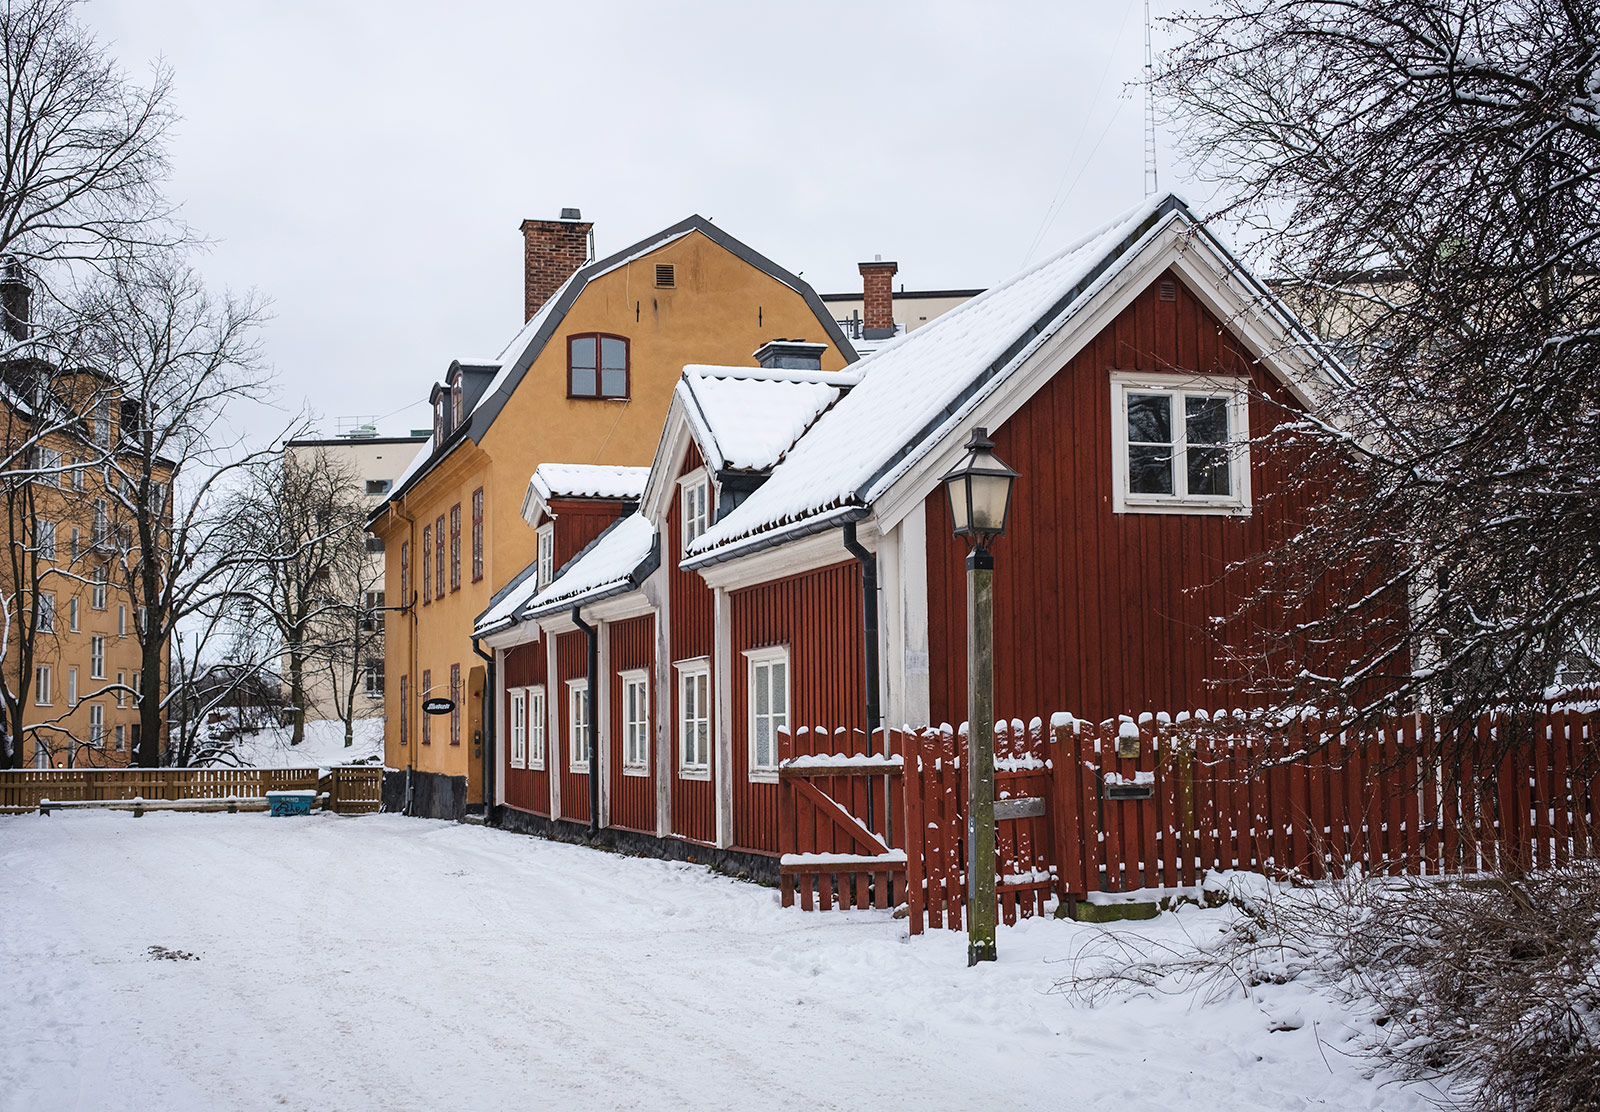 Wooden buildings in the snow